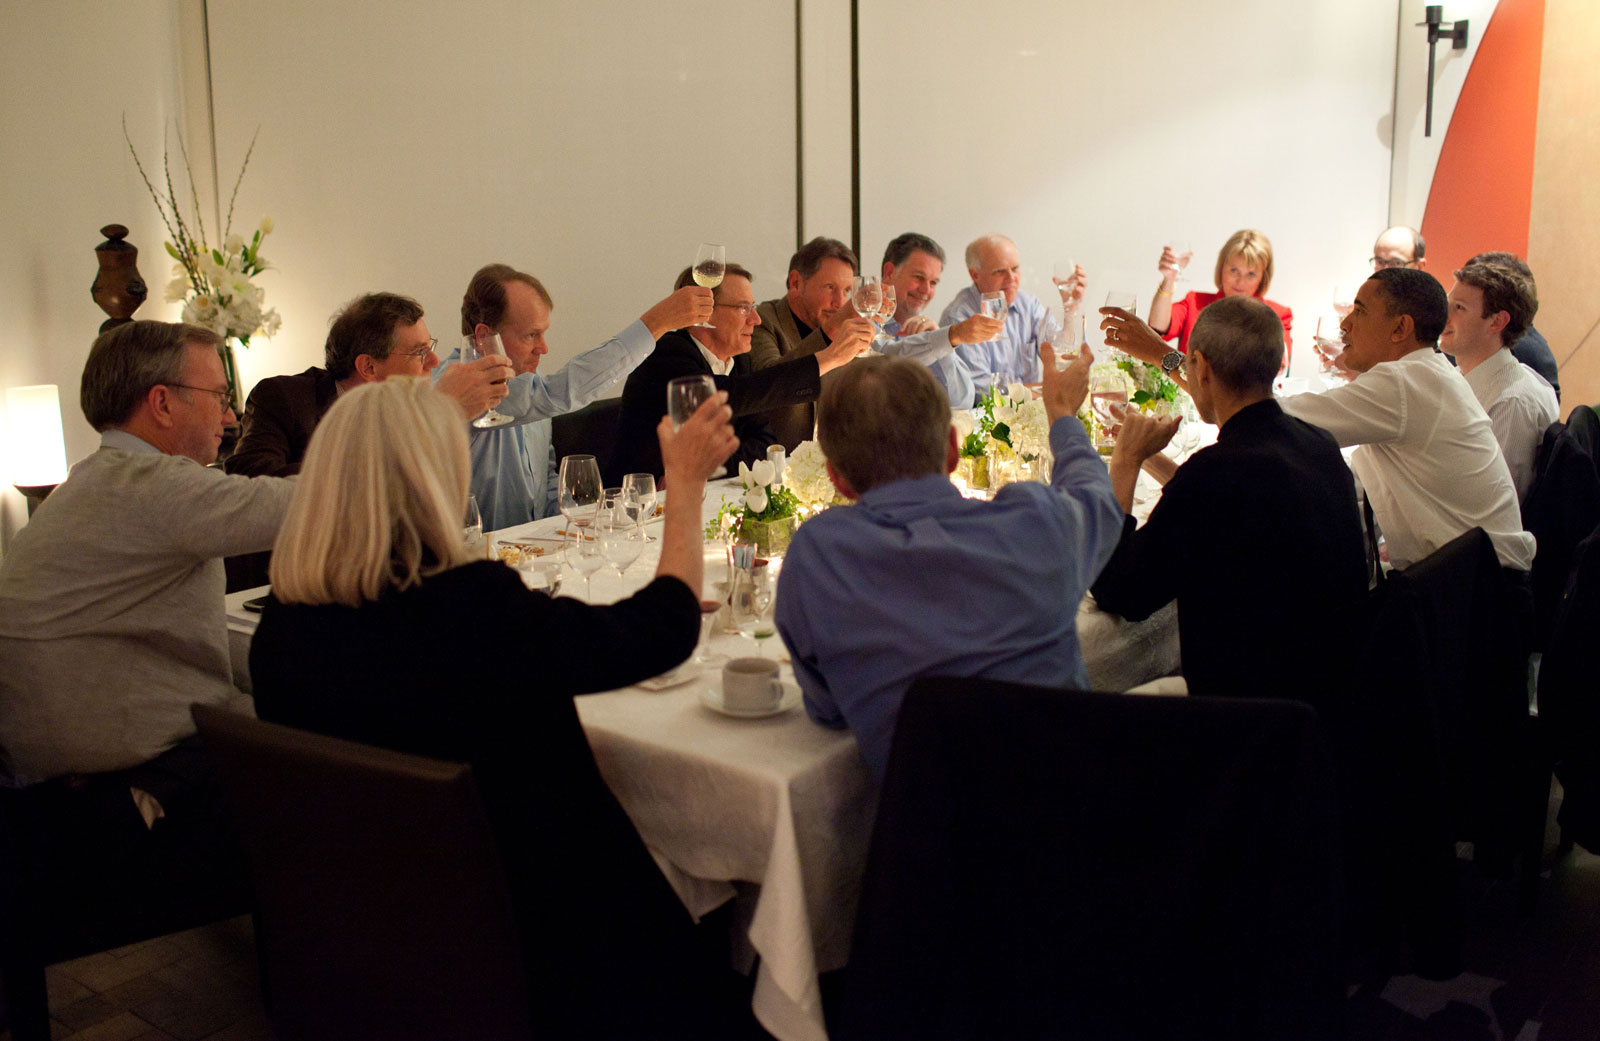 Obama's $1 Trillion Silicon Valley Dinner